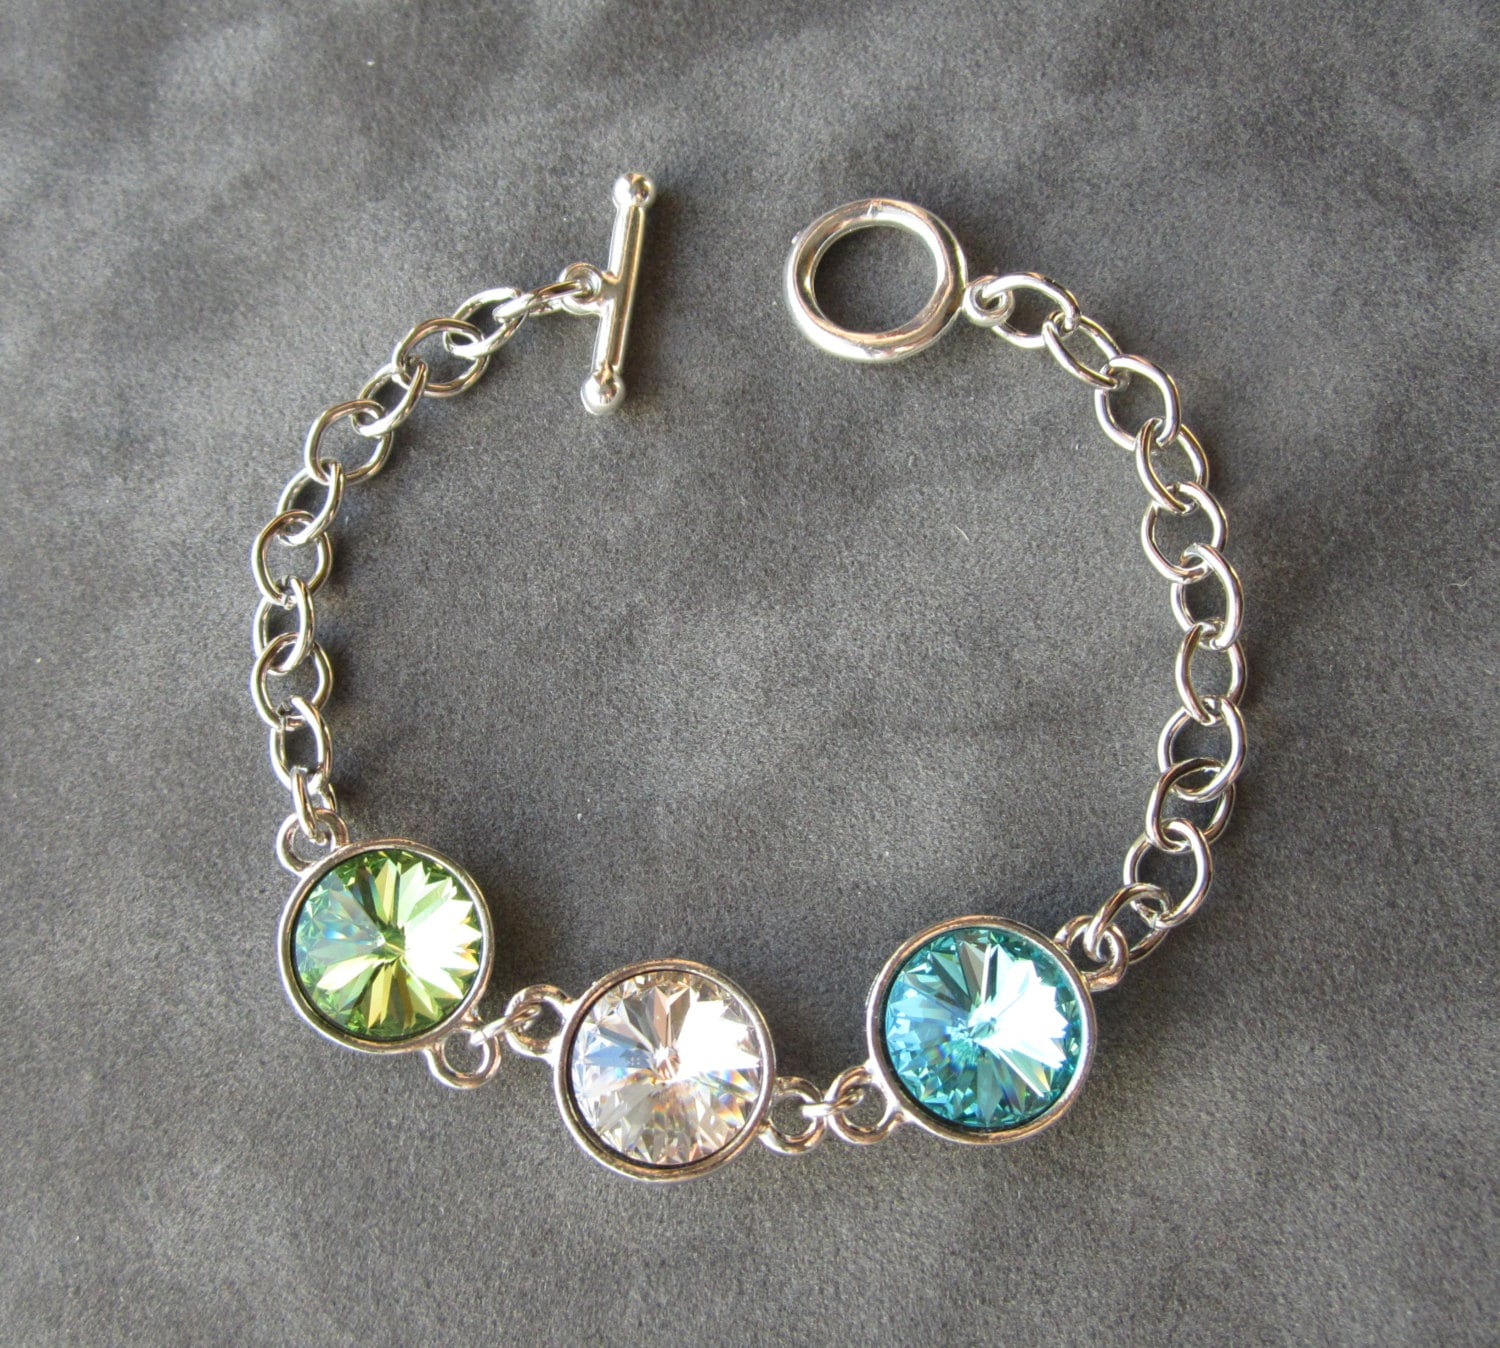 lilia selection choice bracelet birthstone silver gemstone bracelets of product nash birthstones charm